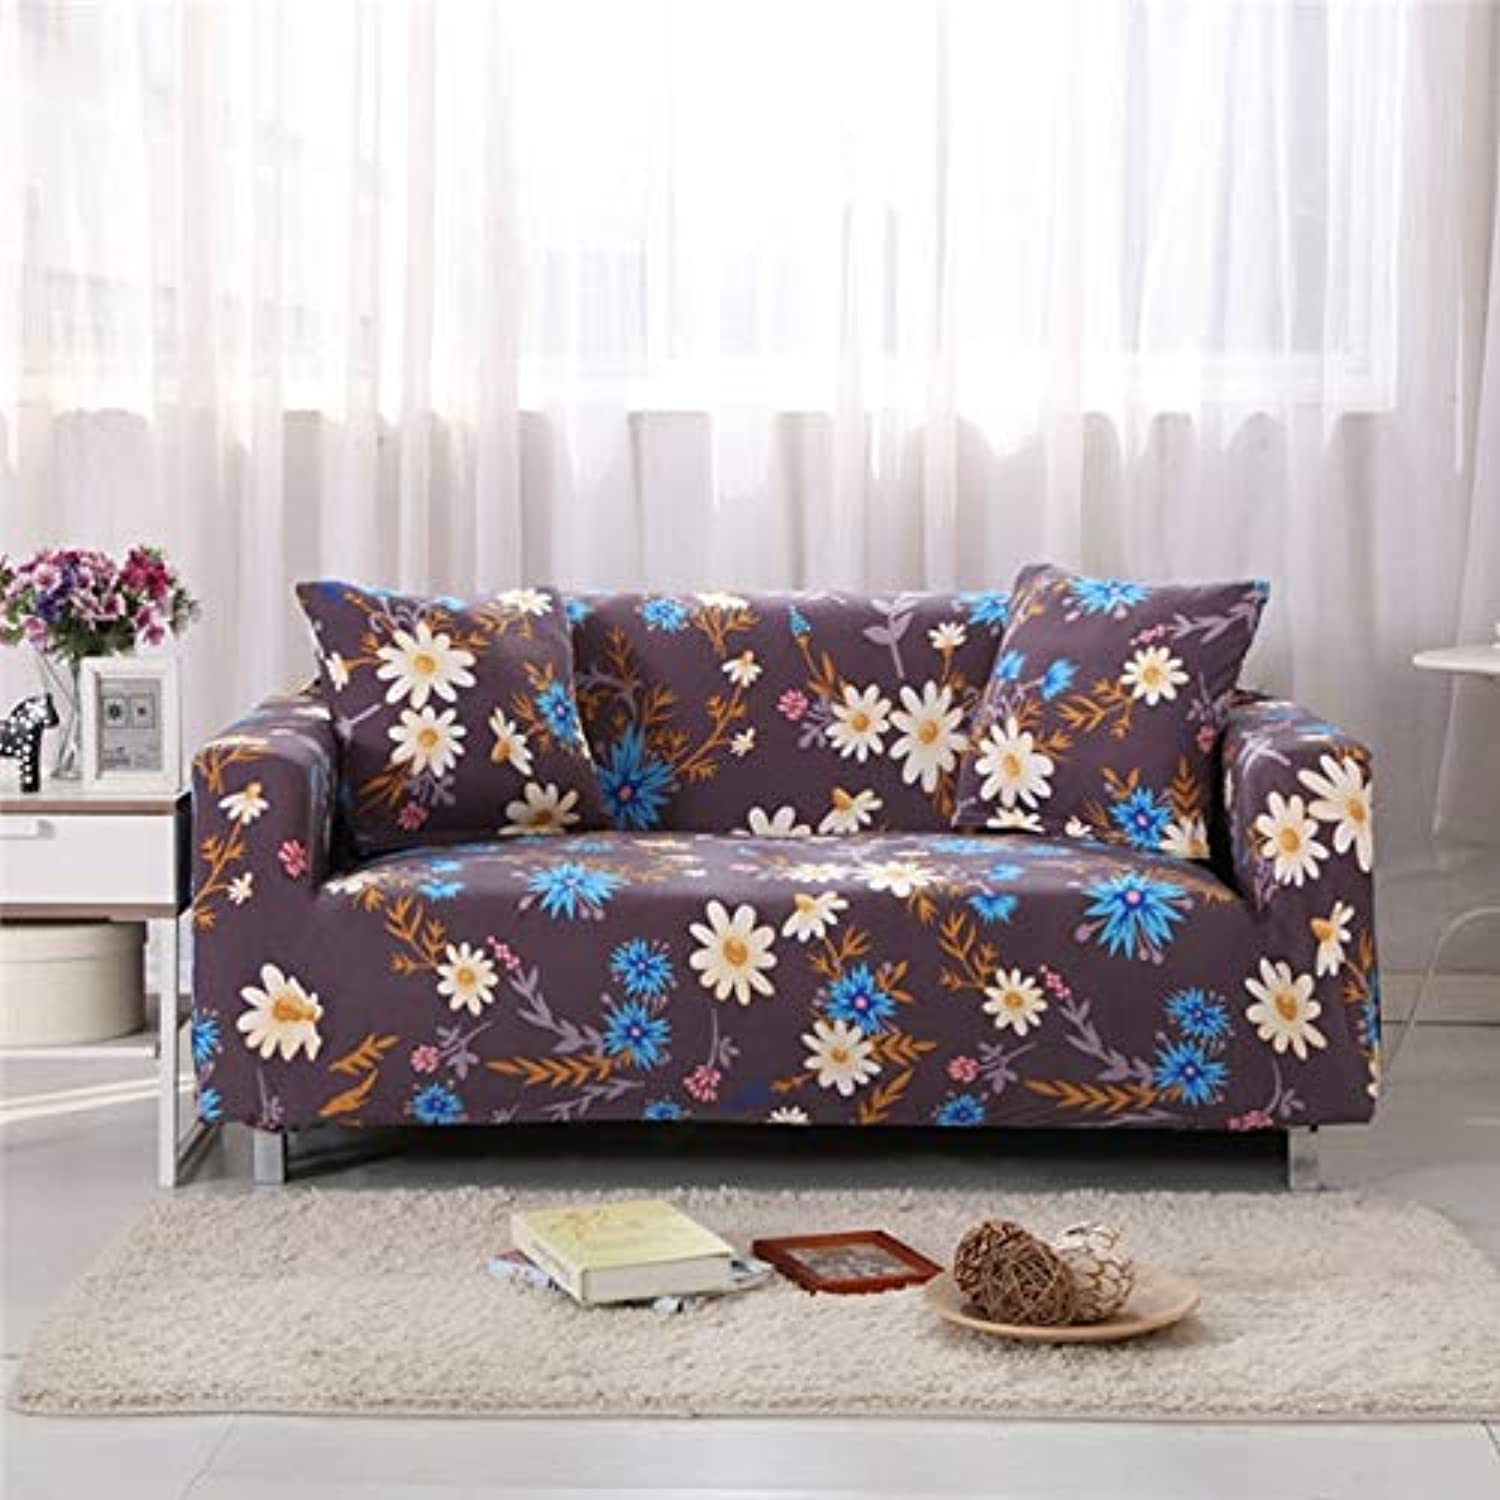 Flamingo Printing Elastic Spandex All-Inclusive Slipcovers Corner Sofa Cover Sectional Sofa Cover Stretch Predective Couch Cover   8, Single Seater